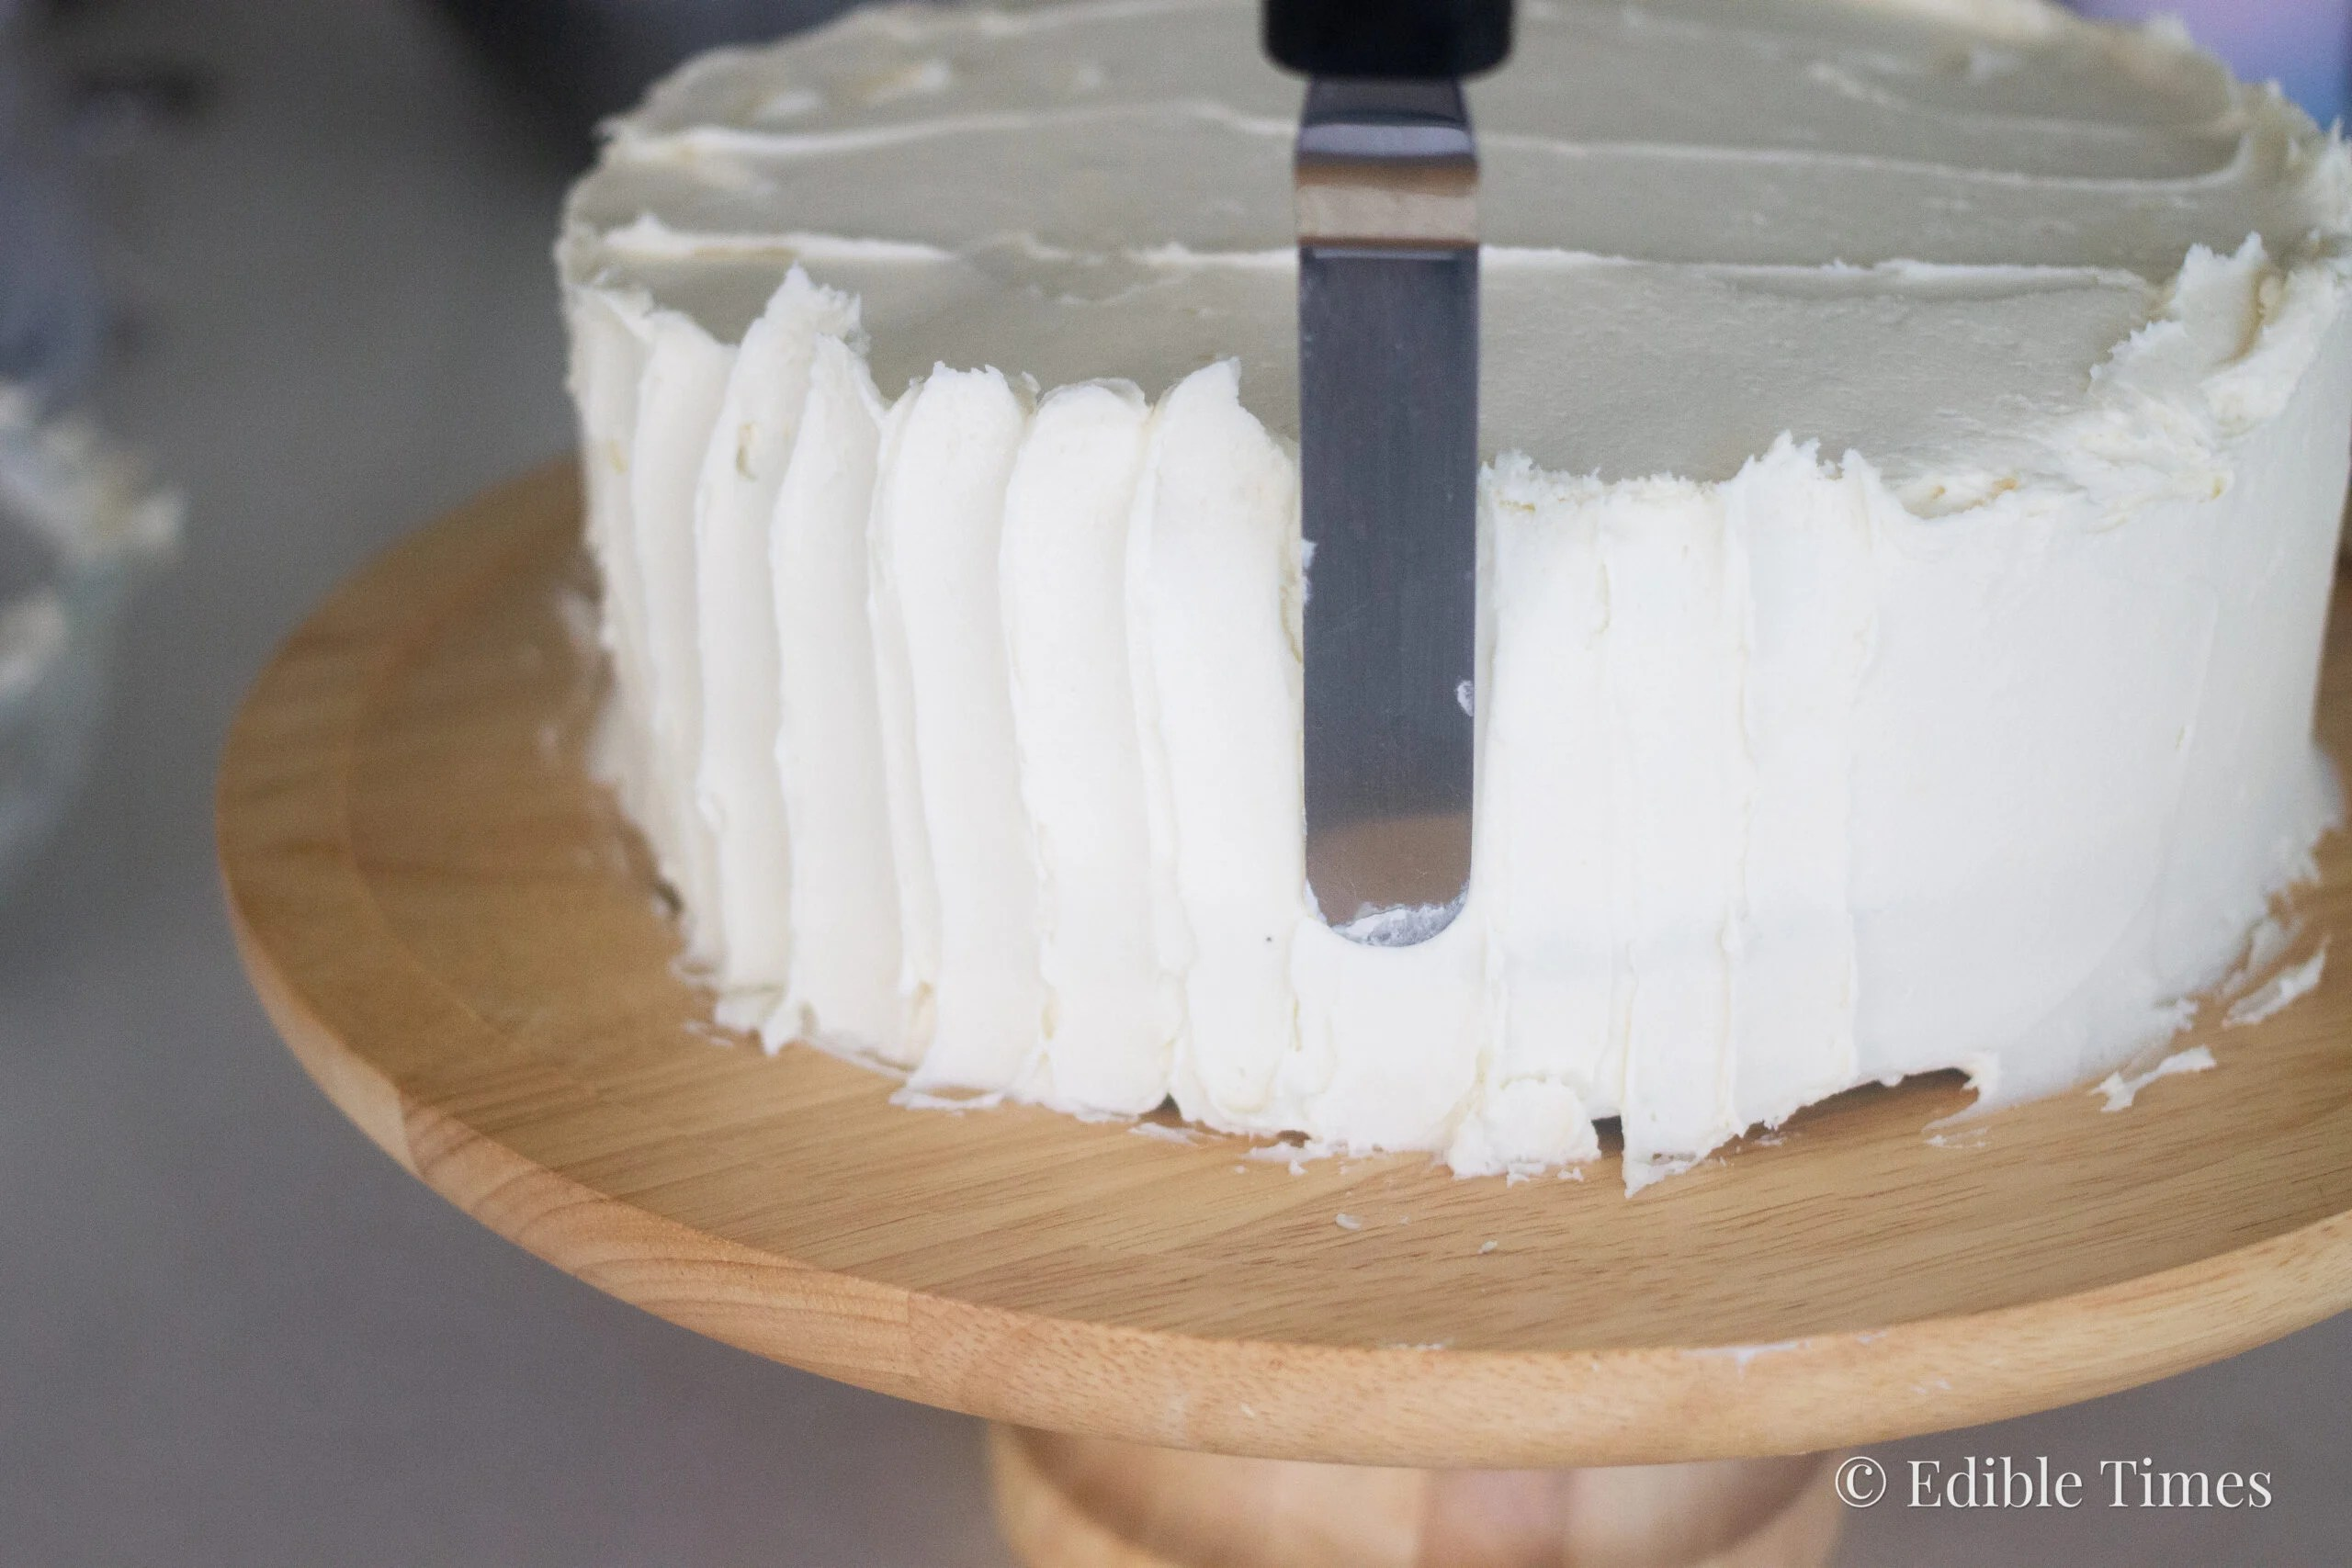 Simple cake decorating tips from Edible Times